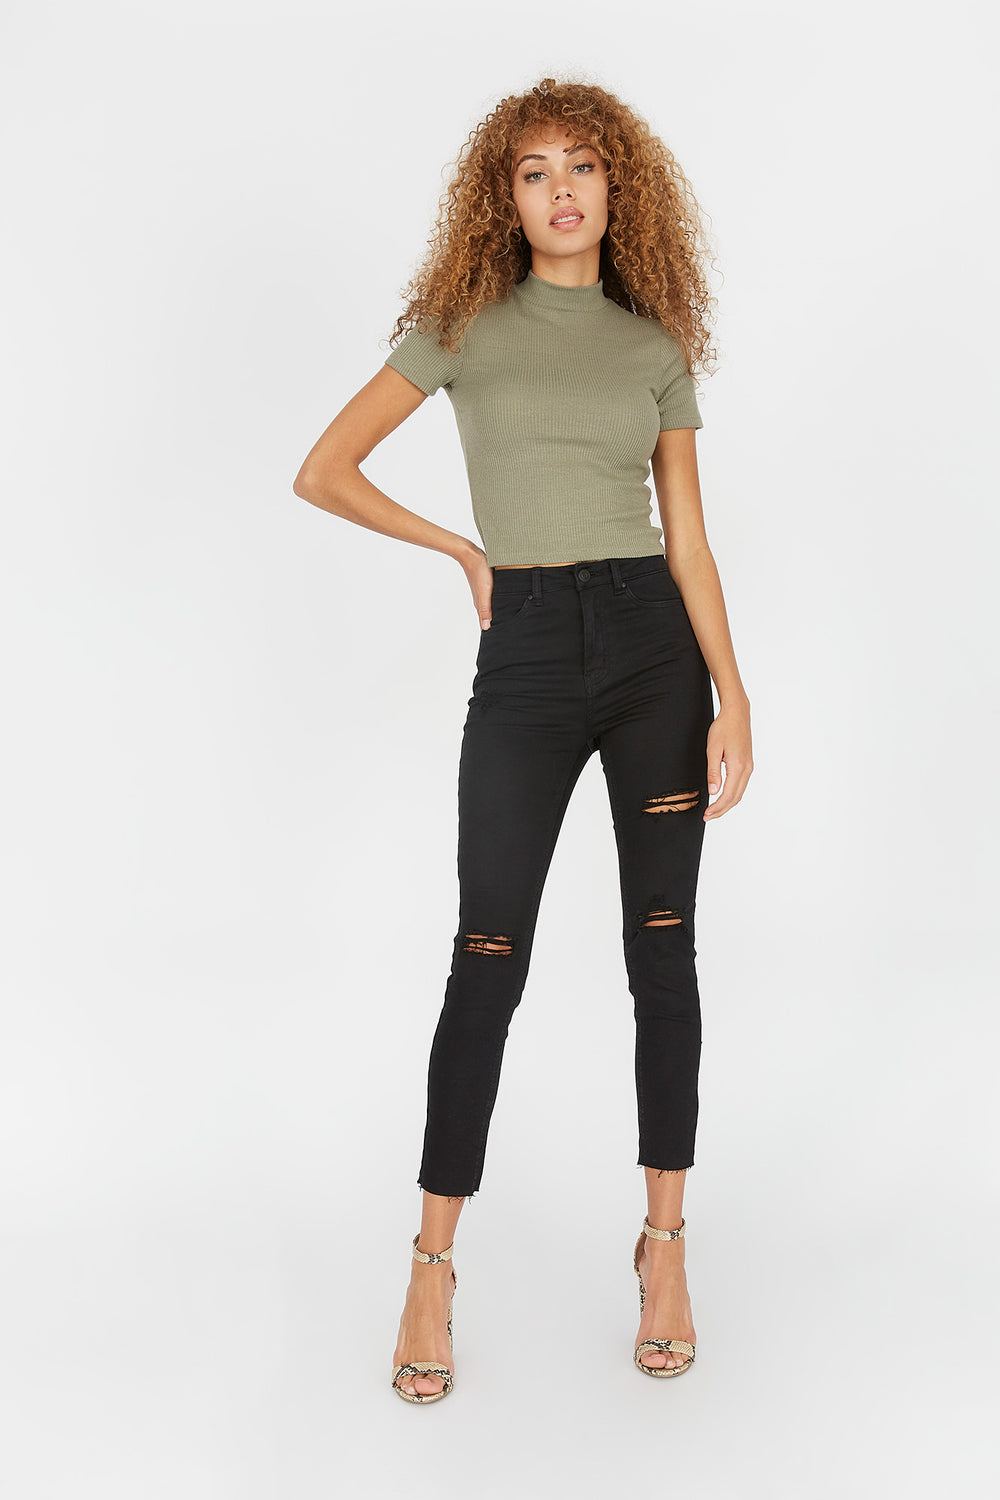 Refuge Cali Ultra High-Rise Distressed Black Skinny Jean Black